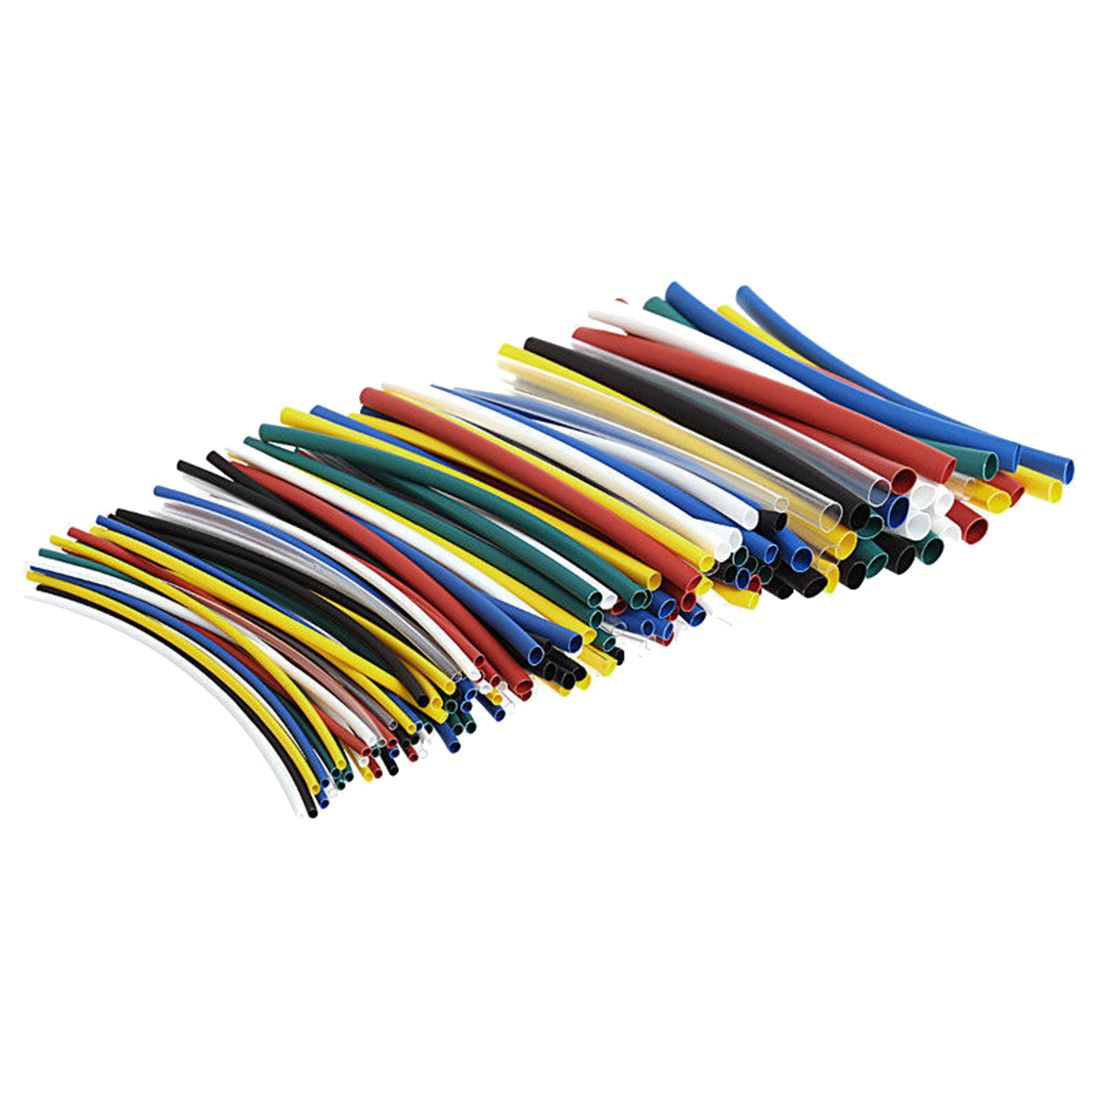 Heat Shrink Tubing 2:1 Heatshrink Tube Sleeve Sleeving Wrap Cable Flex WOER